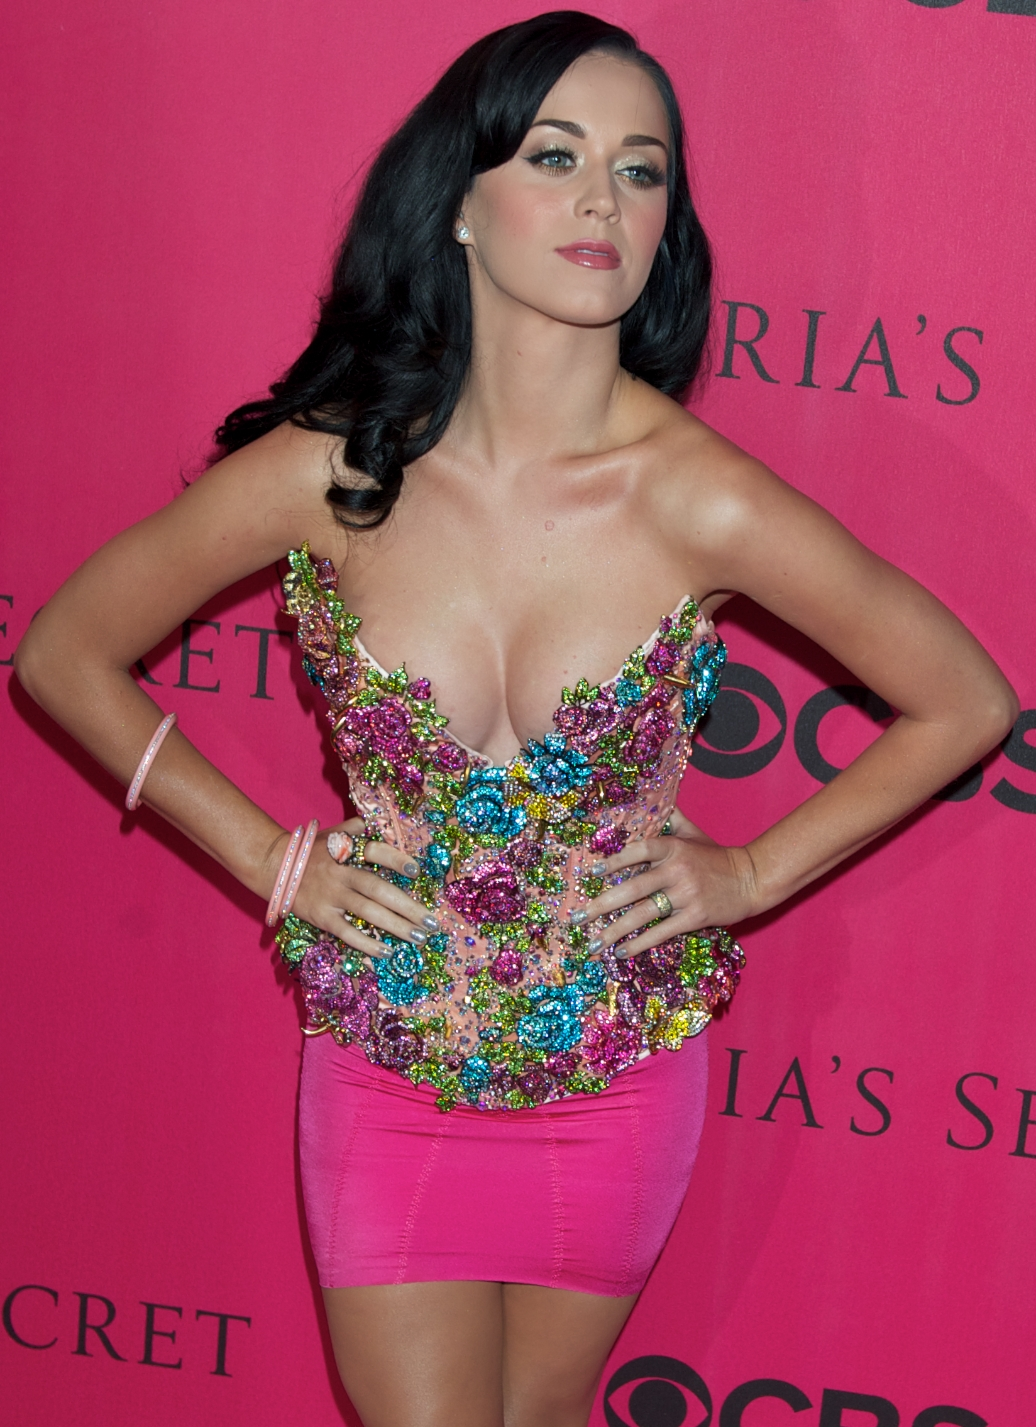 katy perry breasts The Katy Perry Tits, Legs & Ass Show